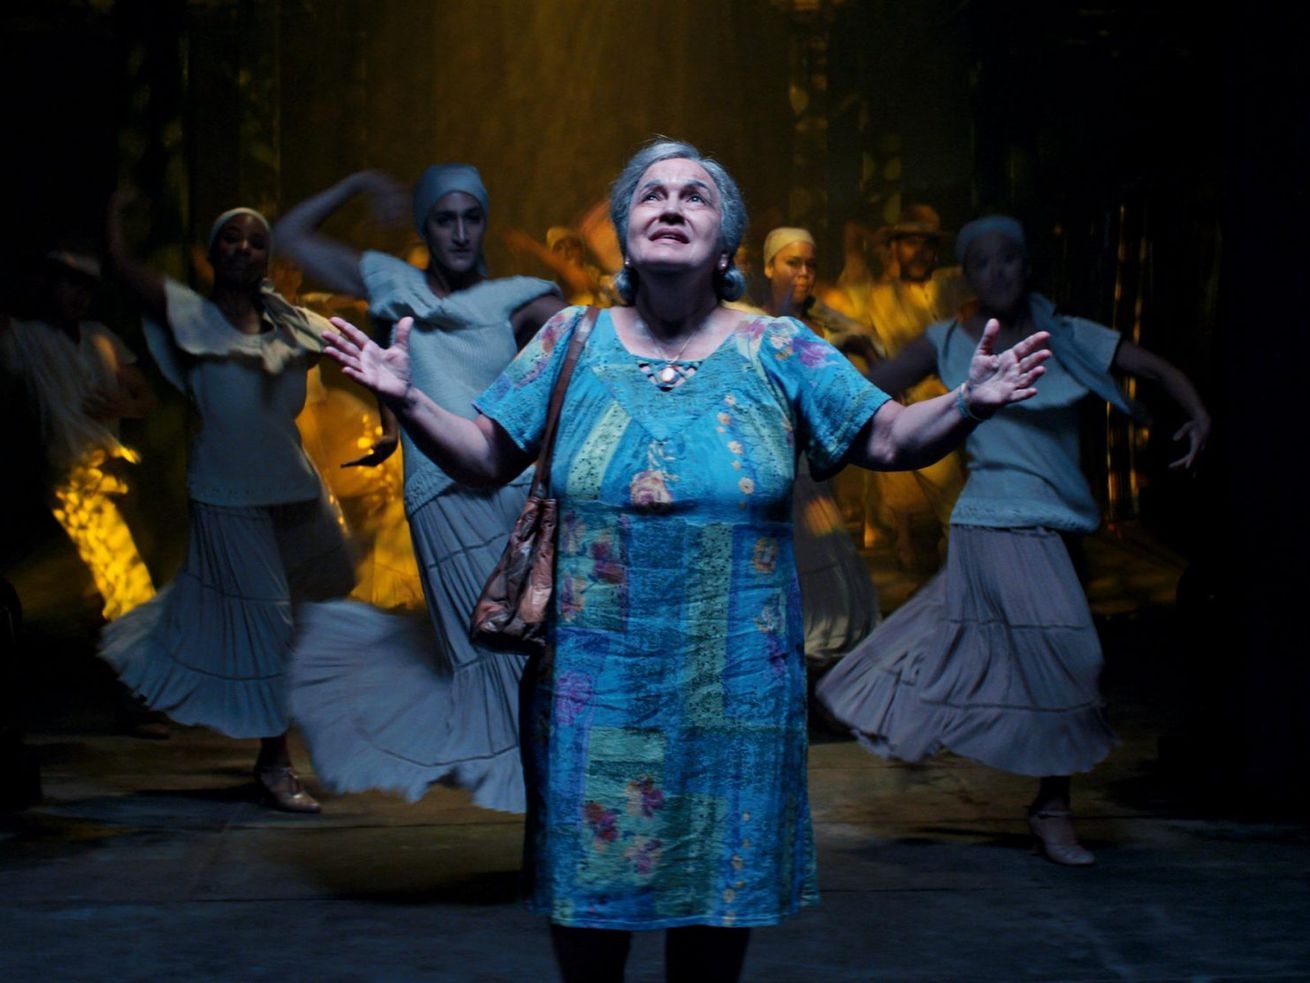 Actor Olga Merediz in a blue floral house dress raises her hands under a spotlight while latinx dancers dressed in all white frame her in the background.